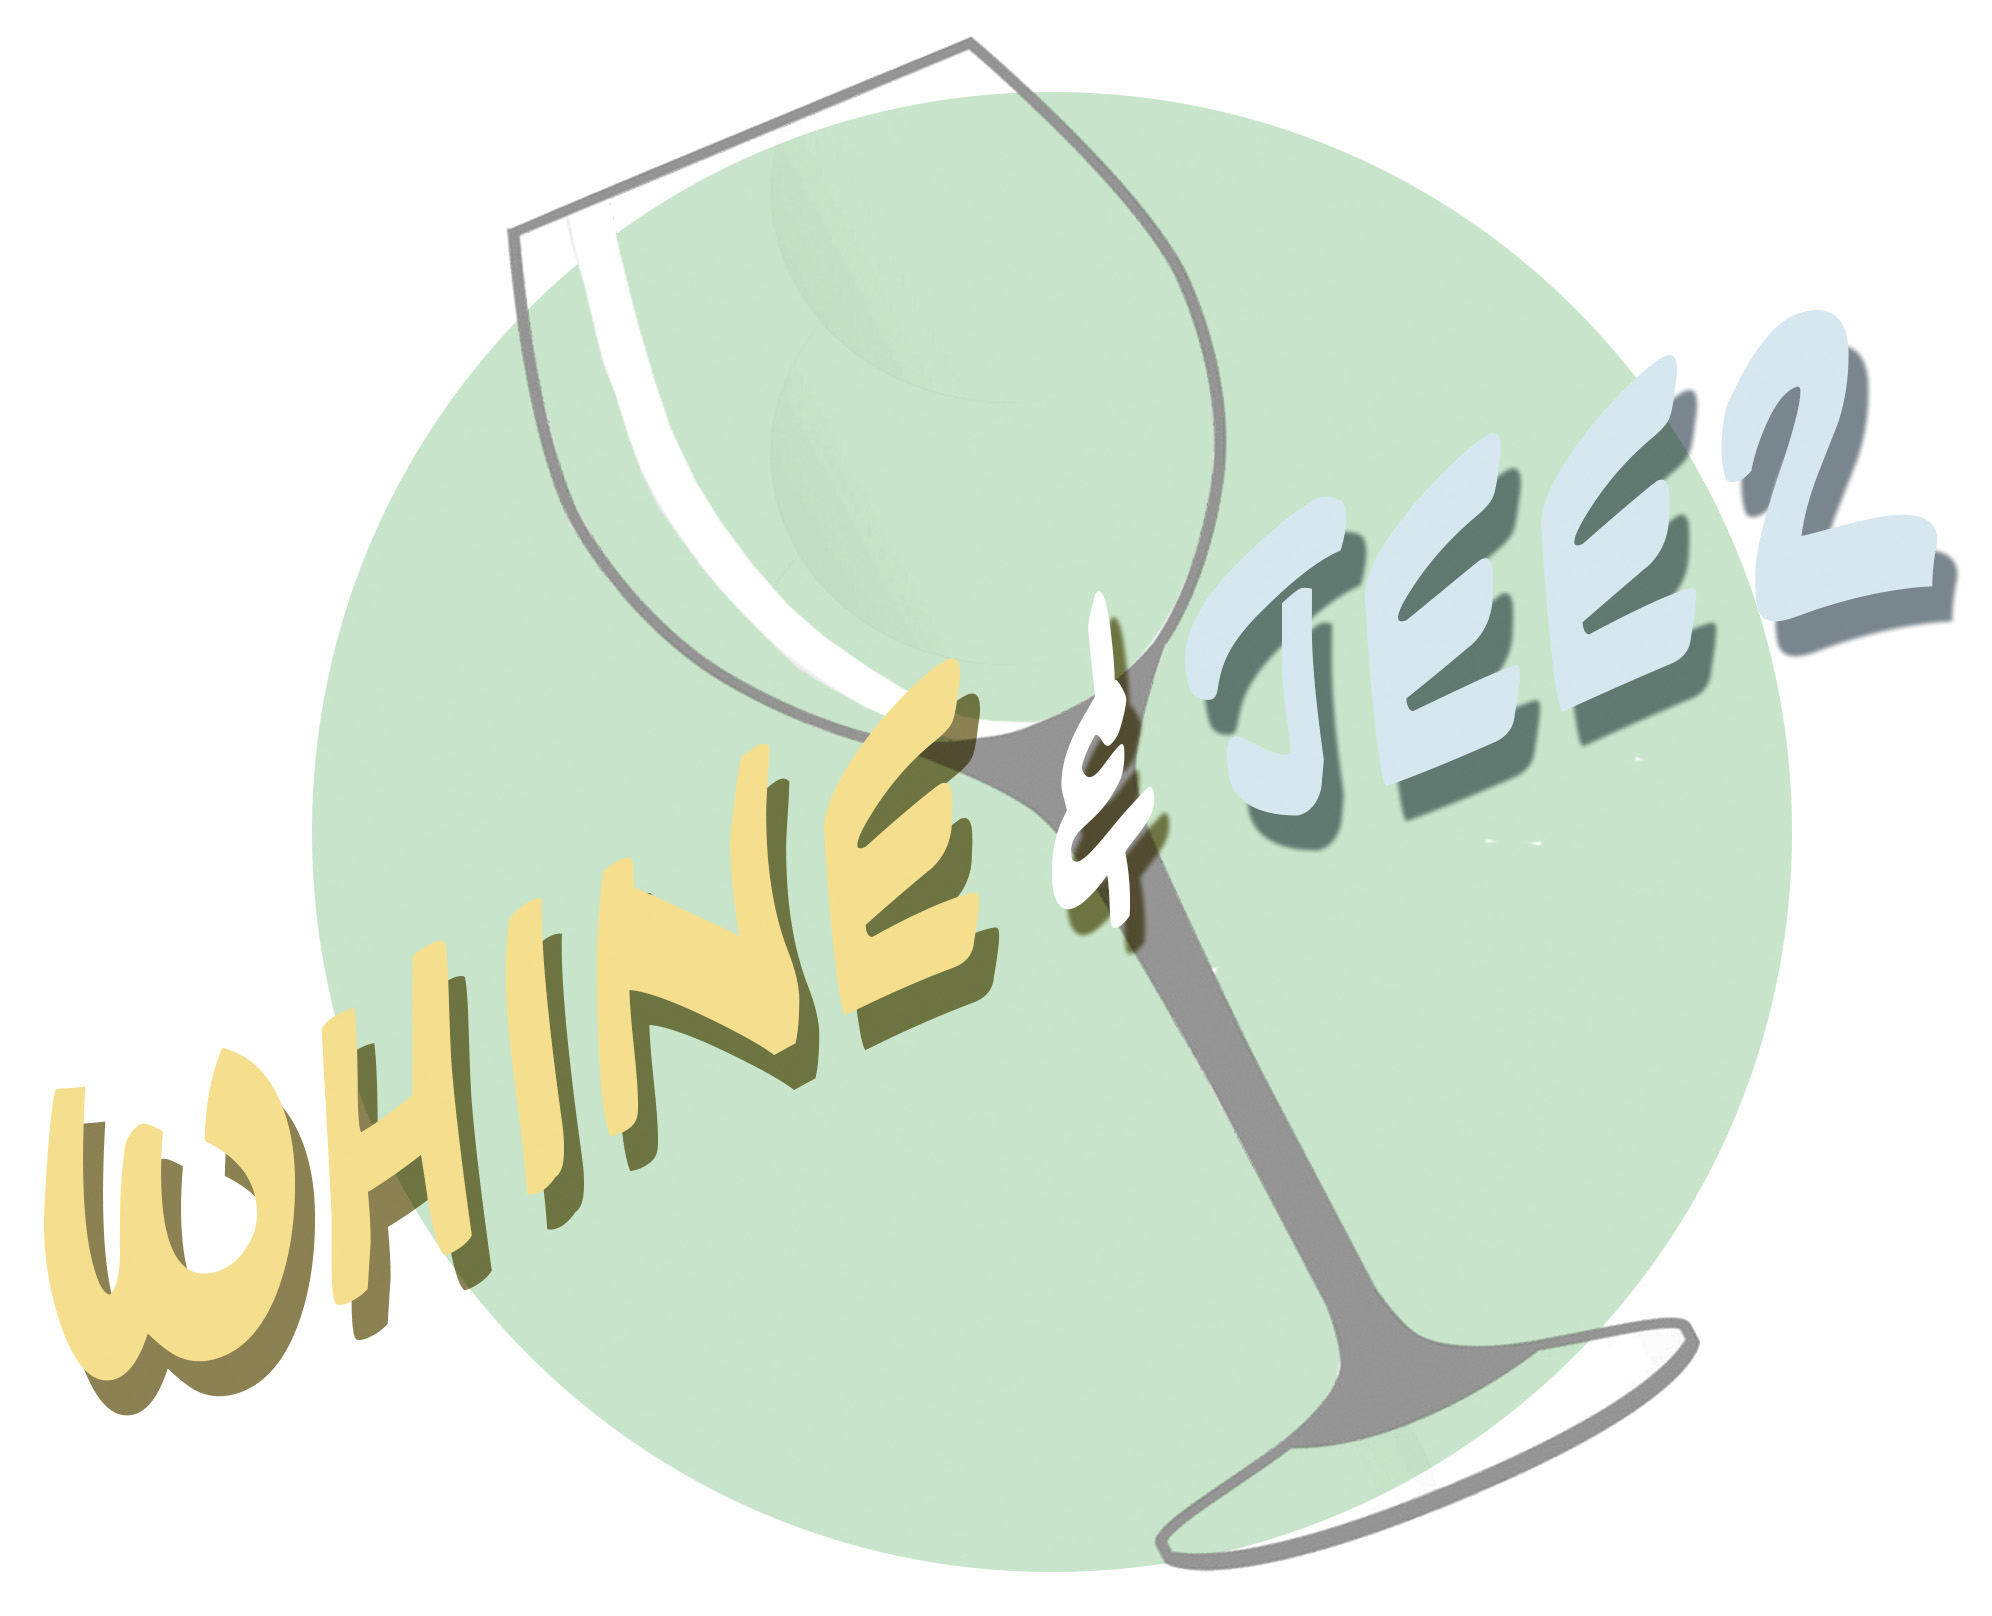 whine and jeez logo